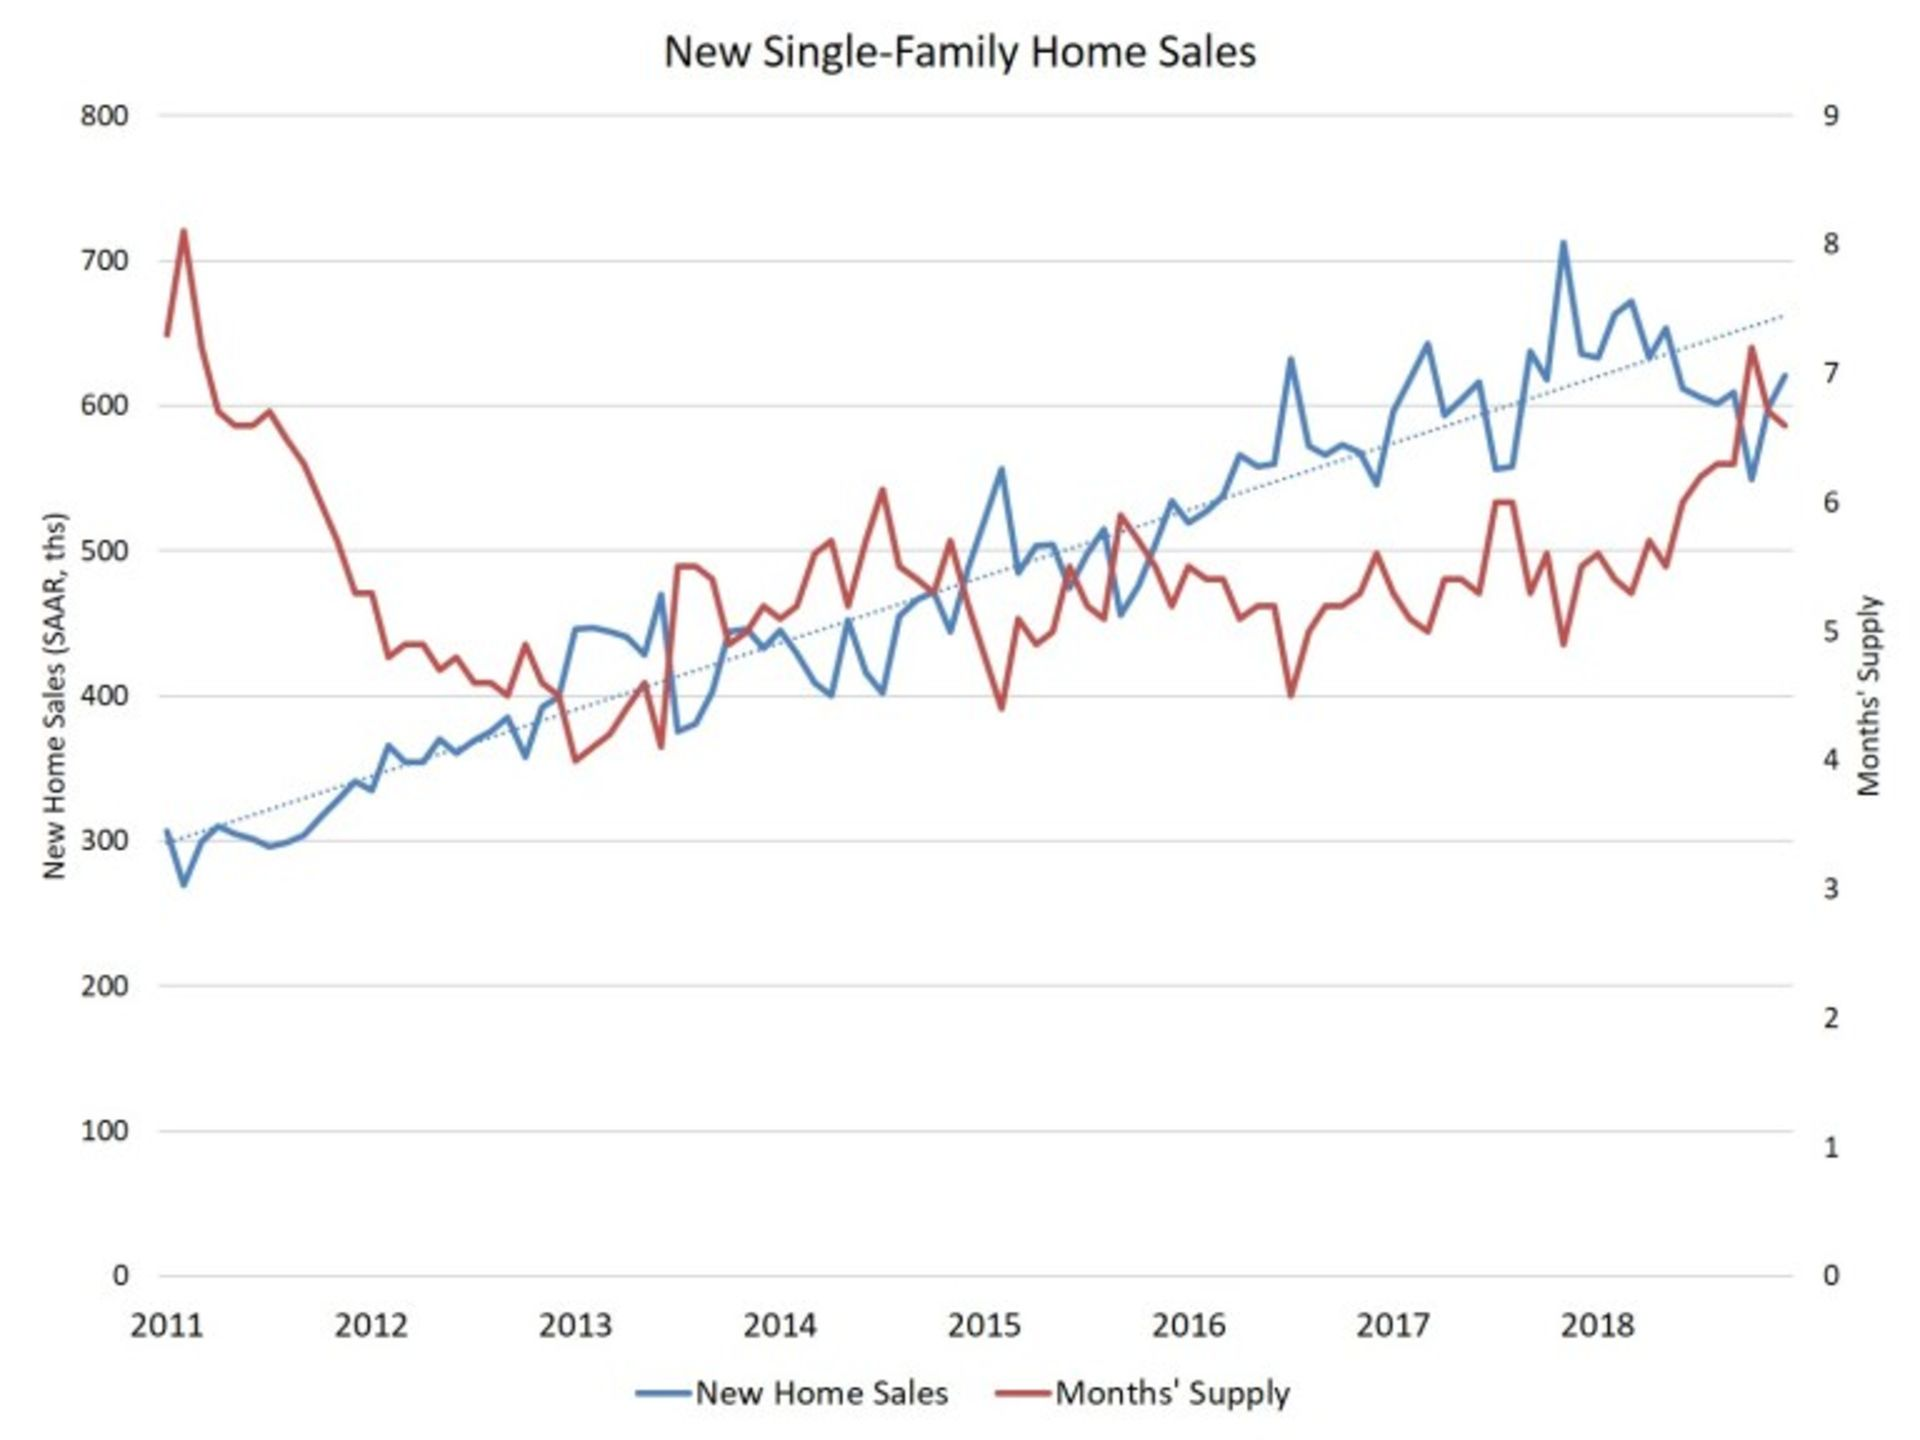 New Home Sales Up 1.5% for the Year